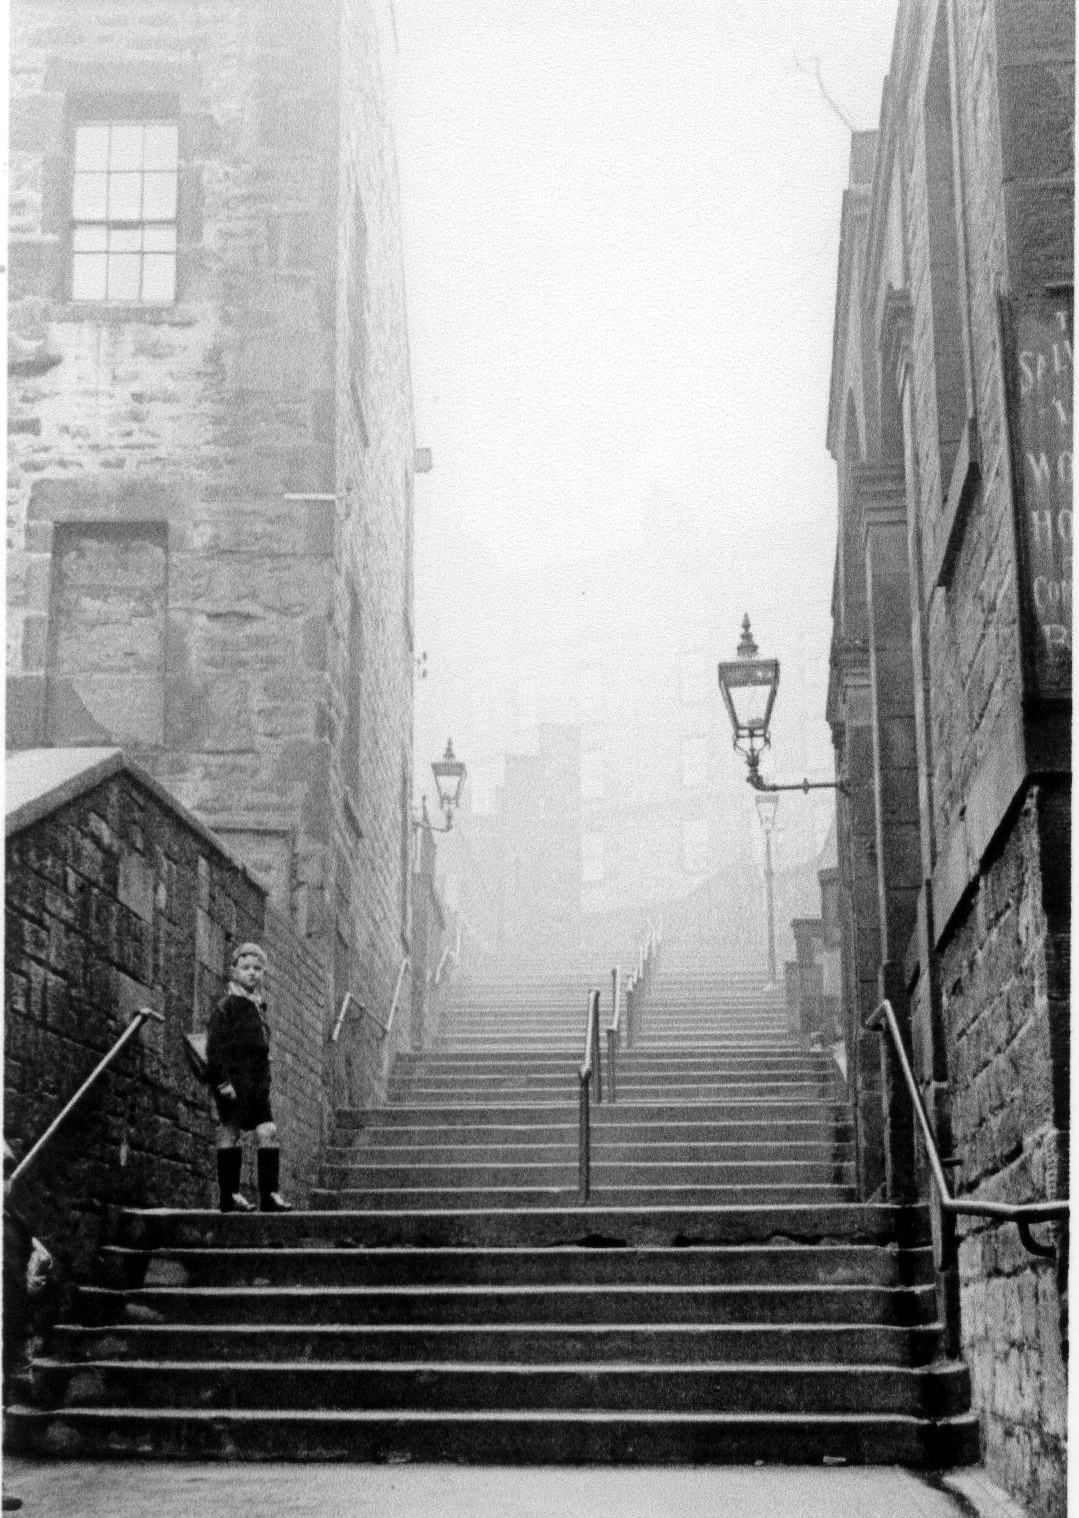 Brown's Close Up Toward Flodden Wall, Grassmarket 1960s